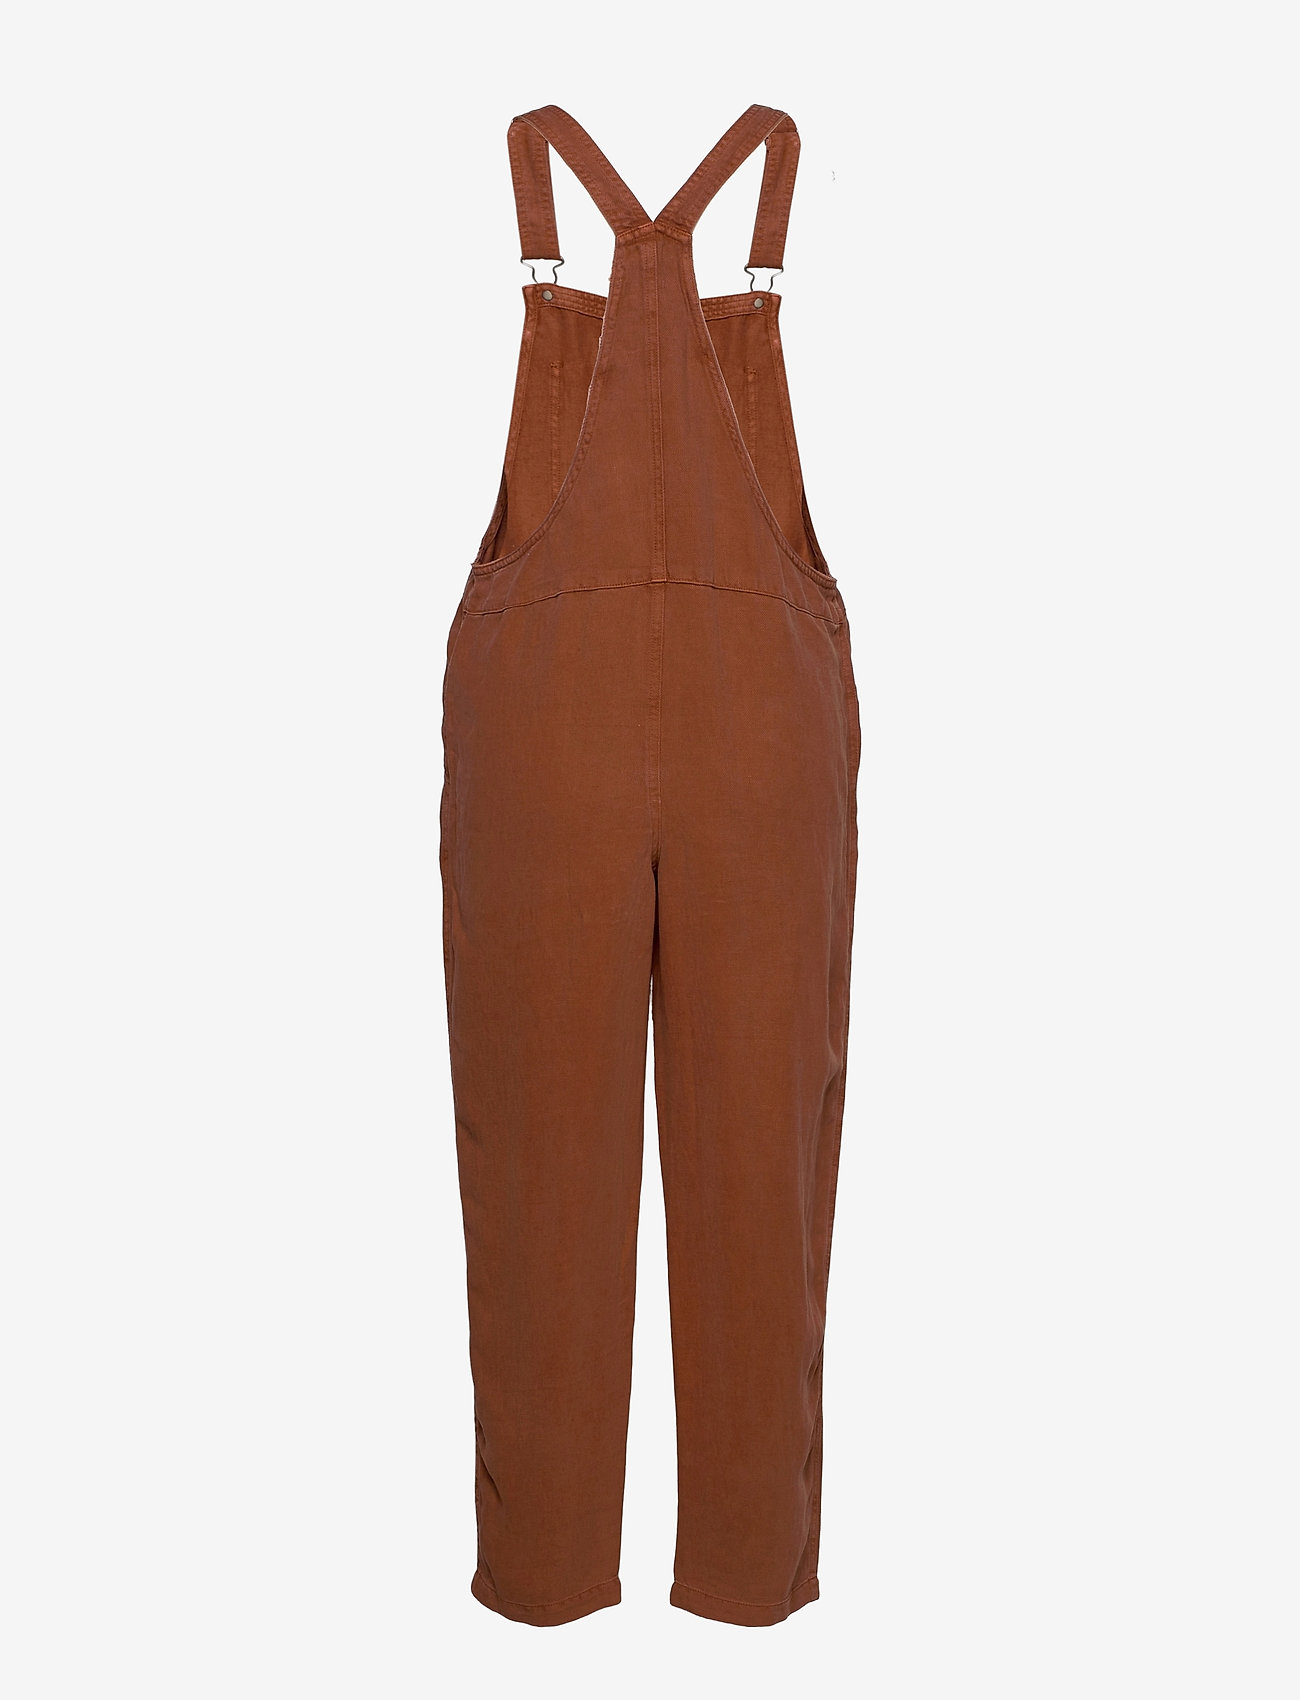 American Eagle - Aerie Twill Overall - clothing - jupiter brown - 1